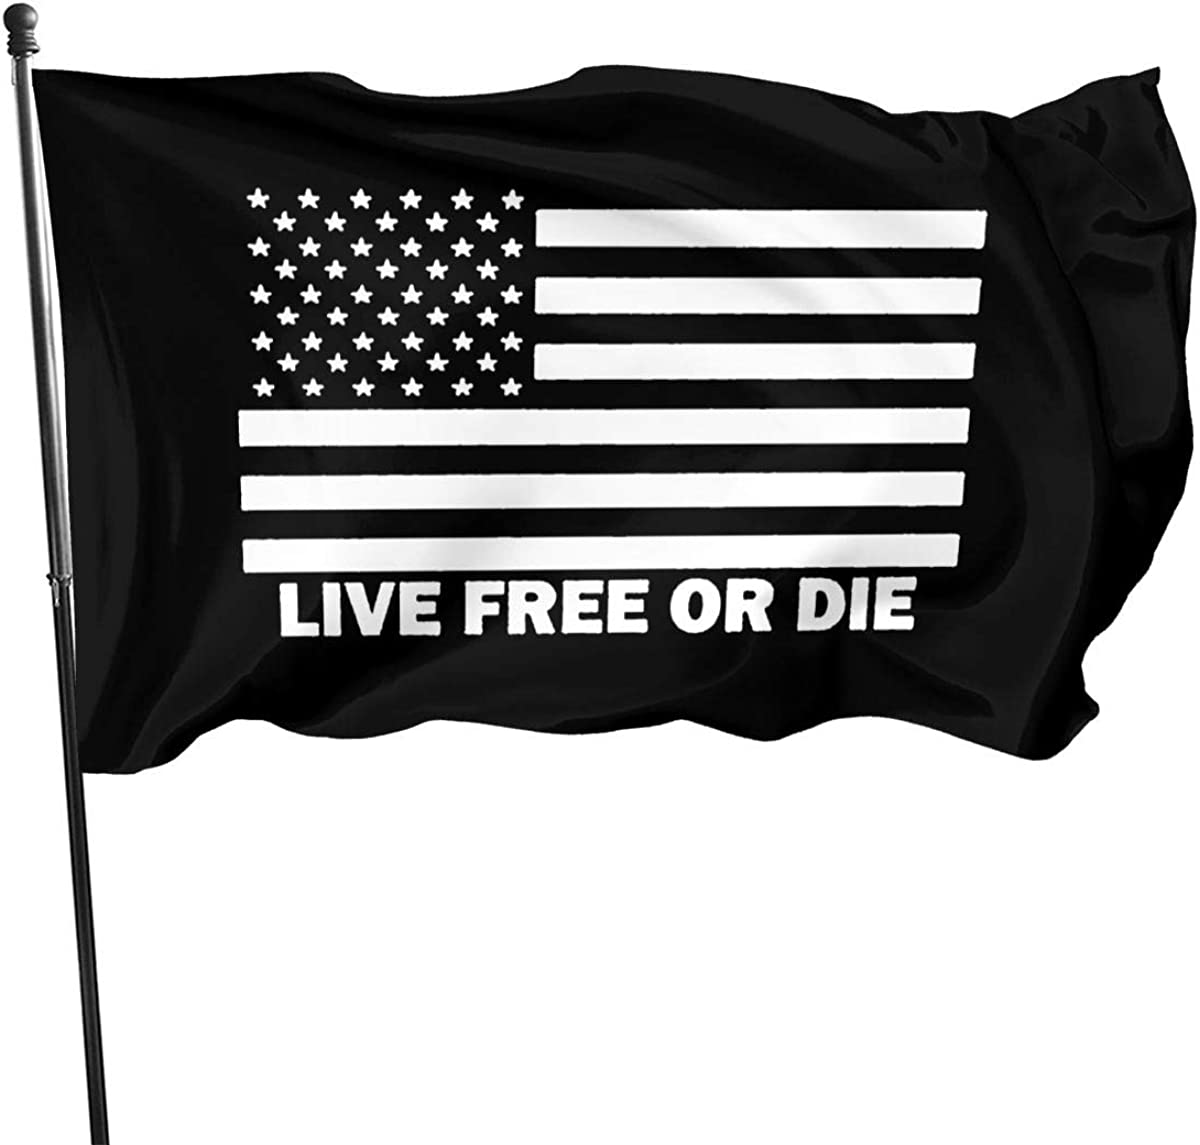 Amazon Com Live Free Or Die American Flag 3x5 Ft American Flag Outdoor Banner Family Banner Garden Banner Black Clothing